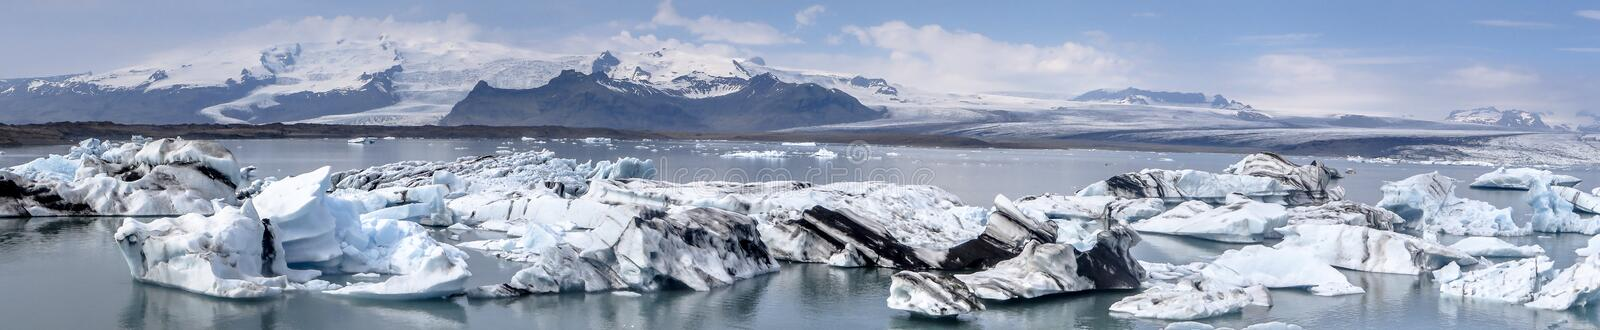 Iceland_glacierlagoon royalty free stock photos